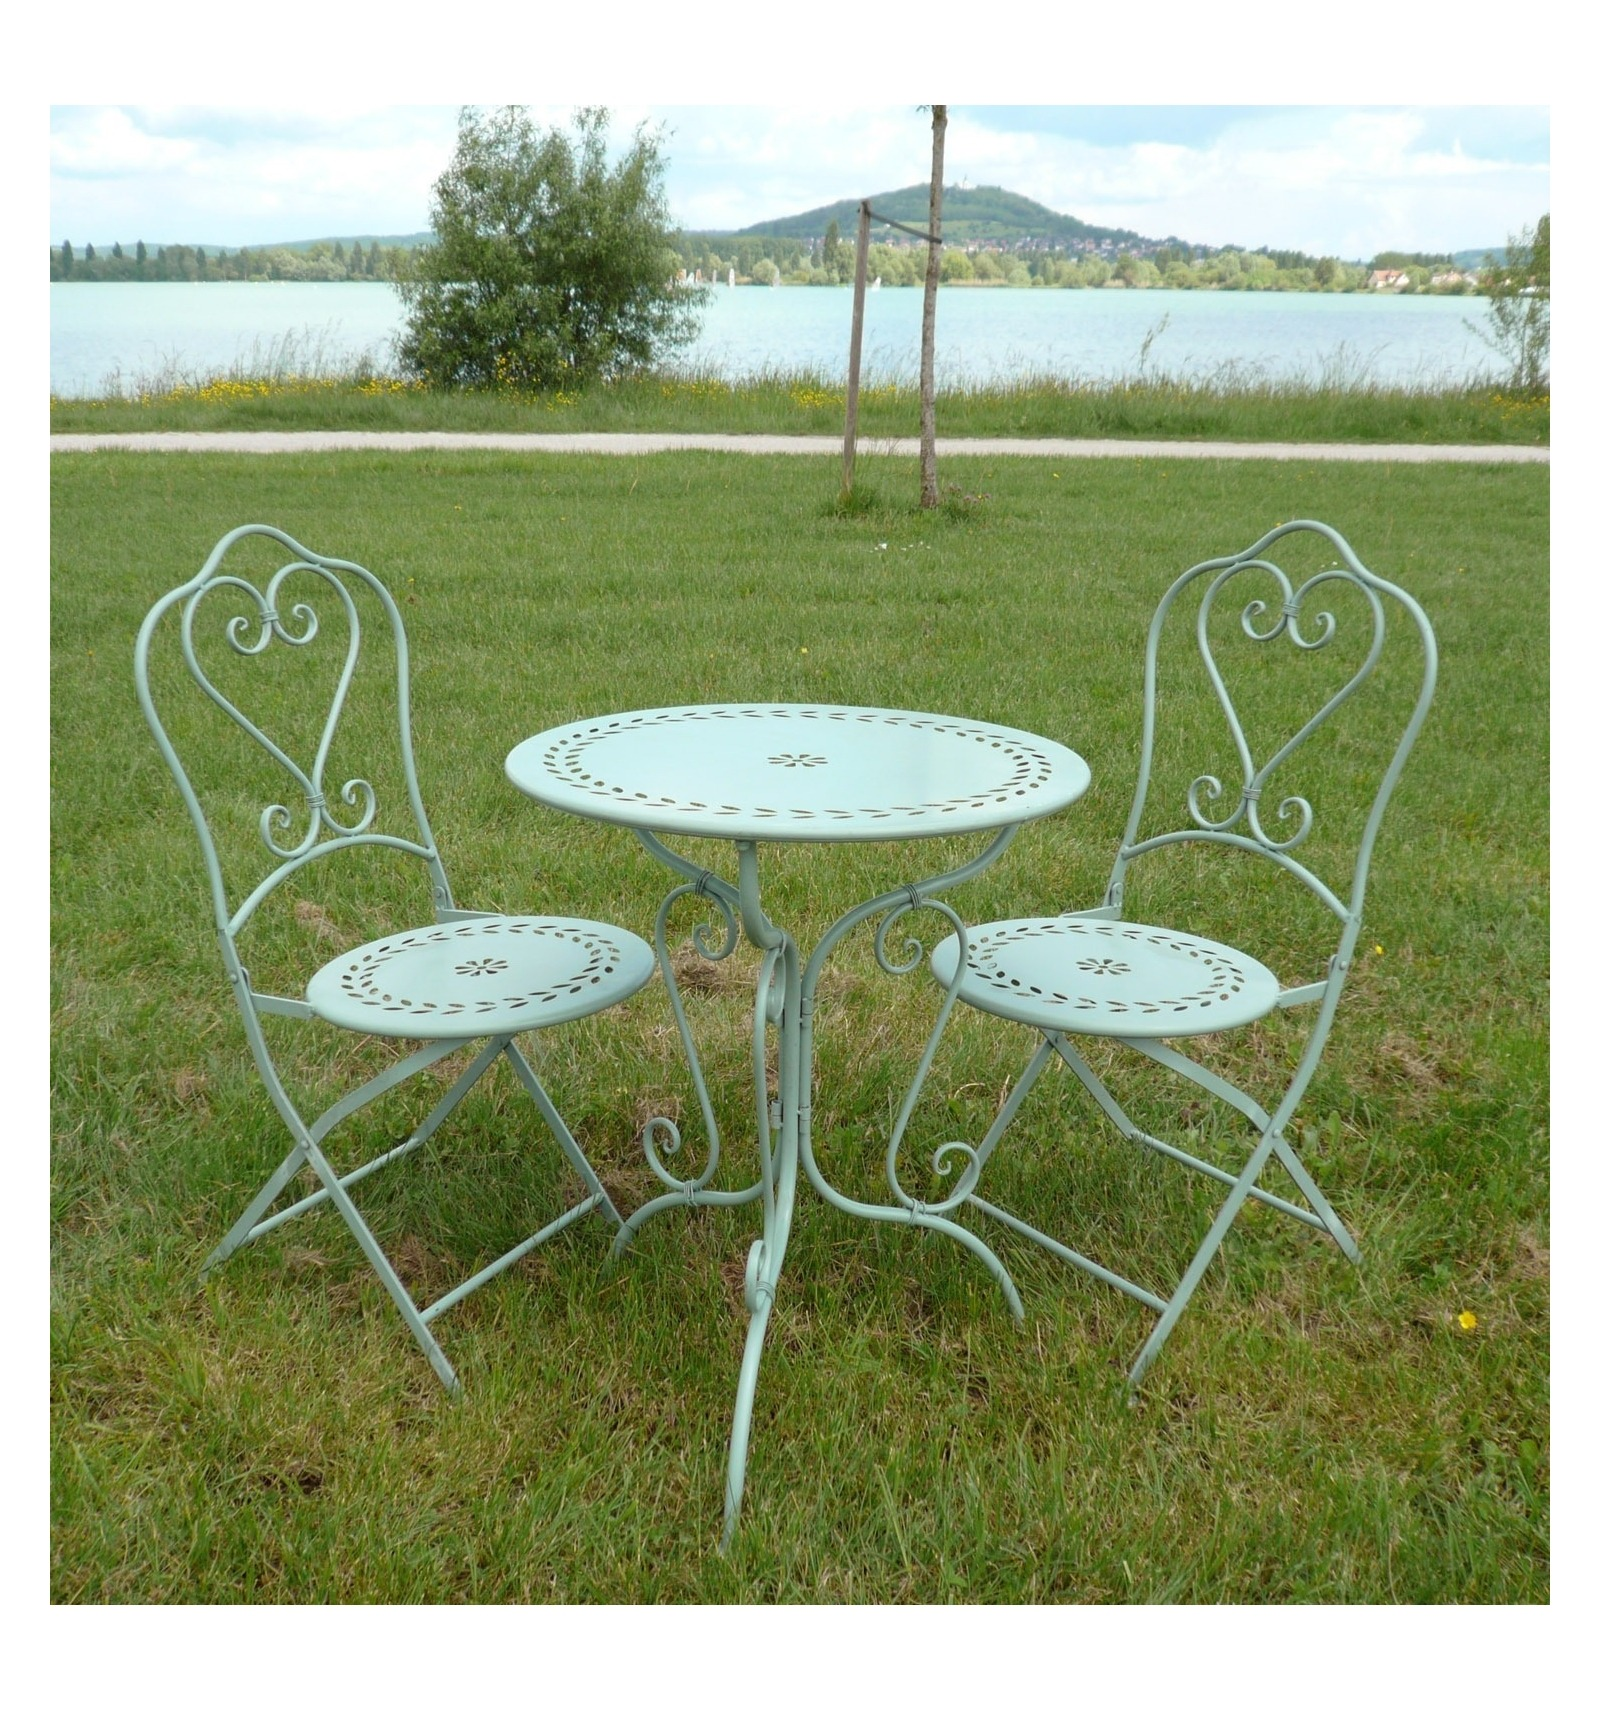 Set de bistrot en fer forg salon de jardin chaise table for Salon de jardin en fer forge